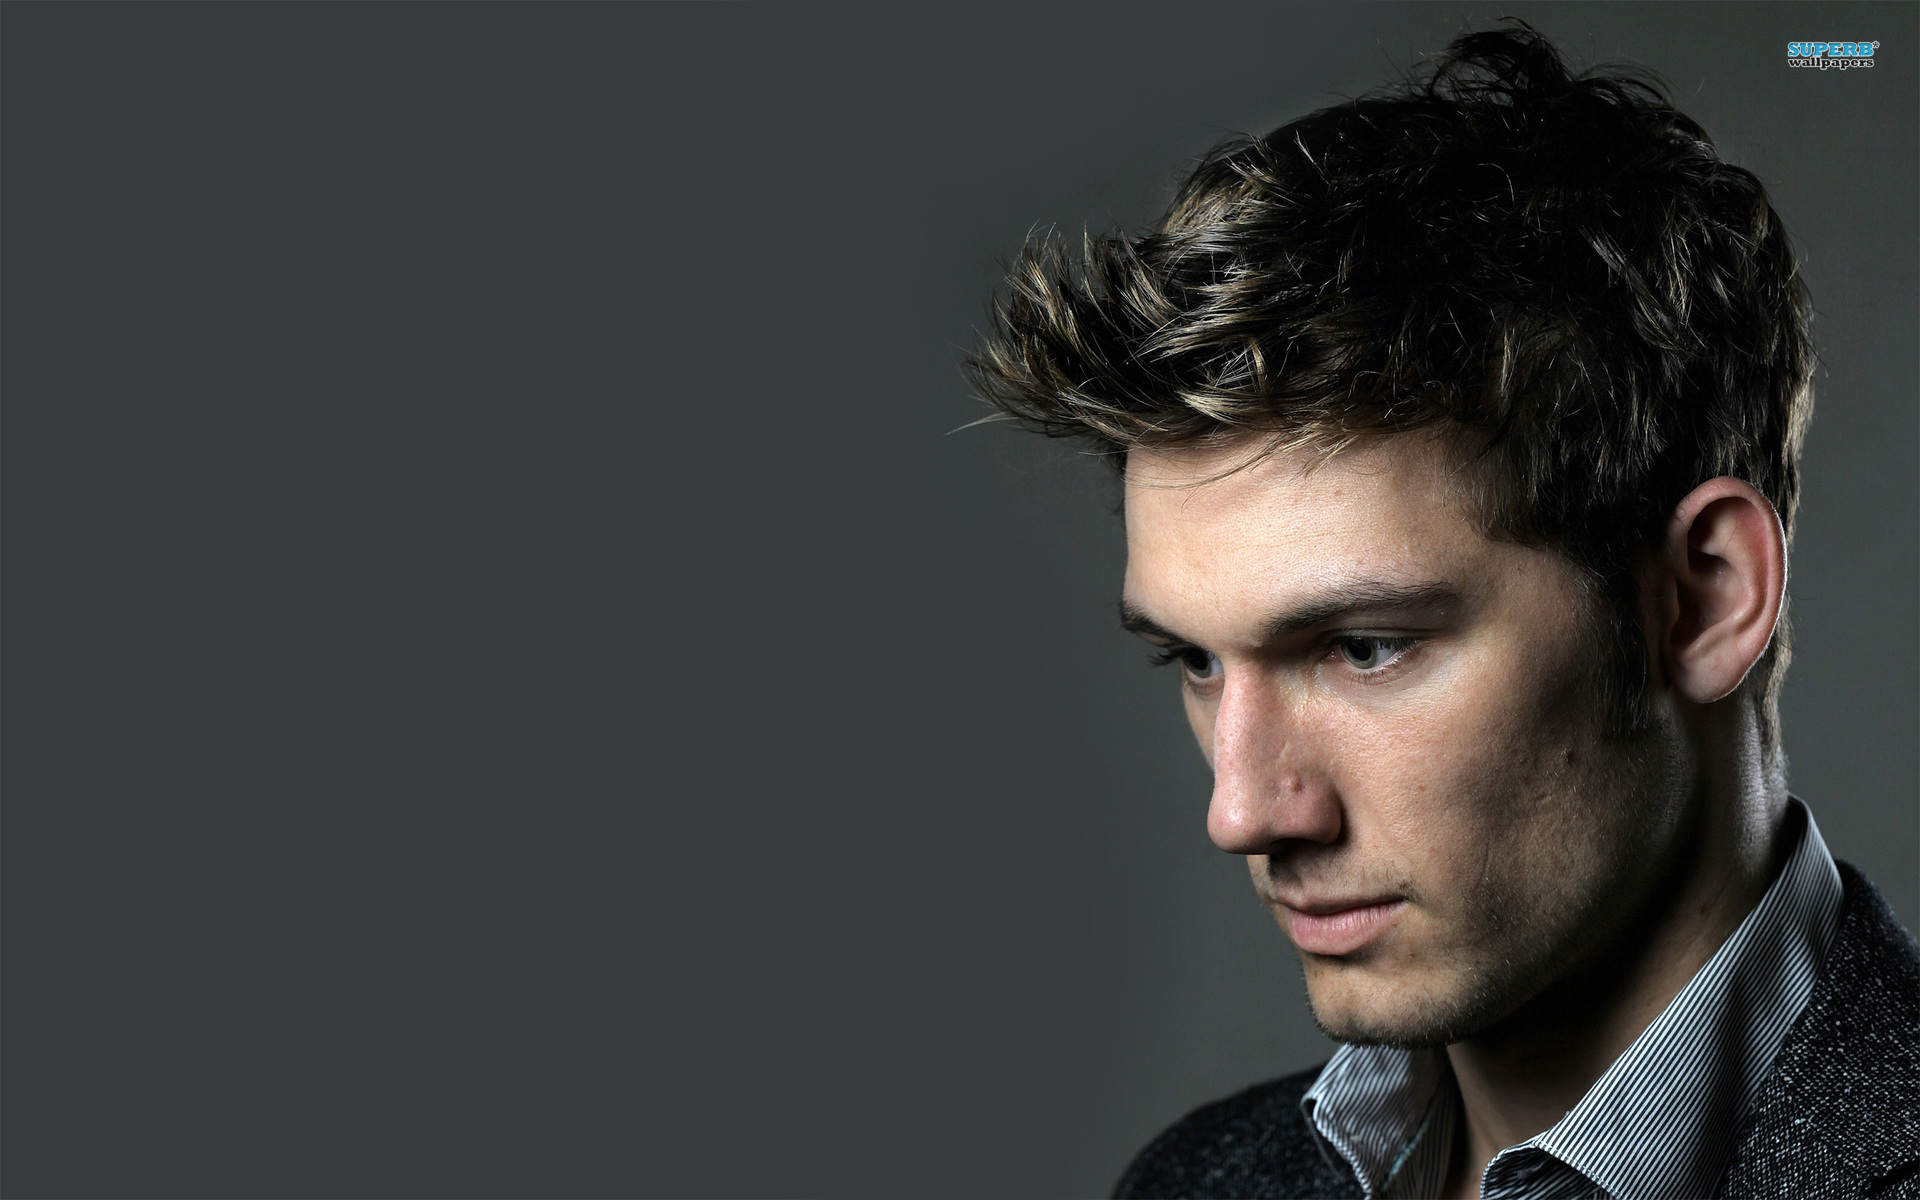 hairstyles-hd-wallpapers17 | male standard